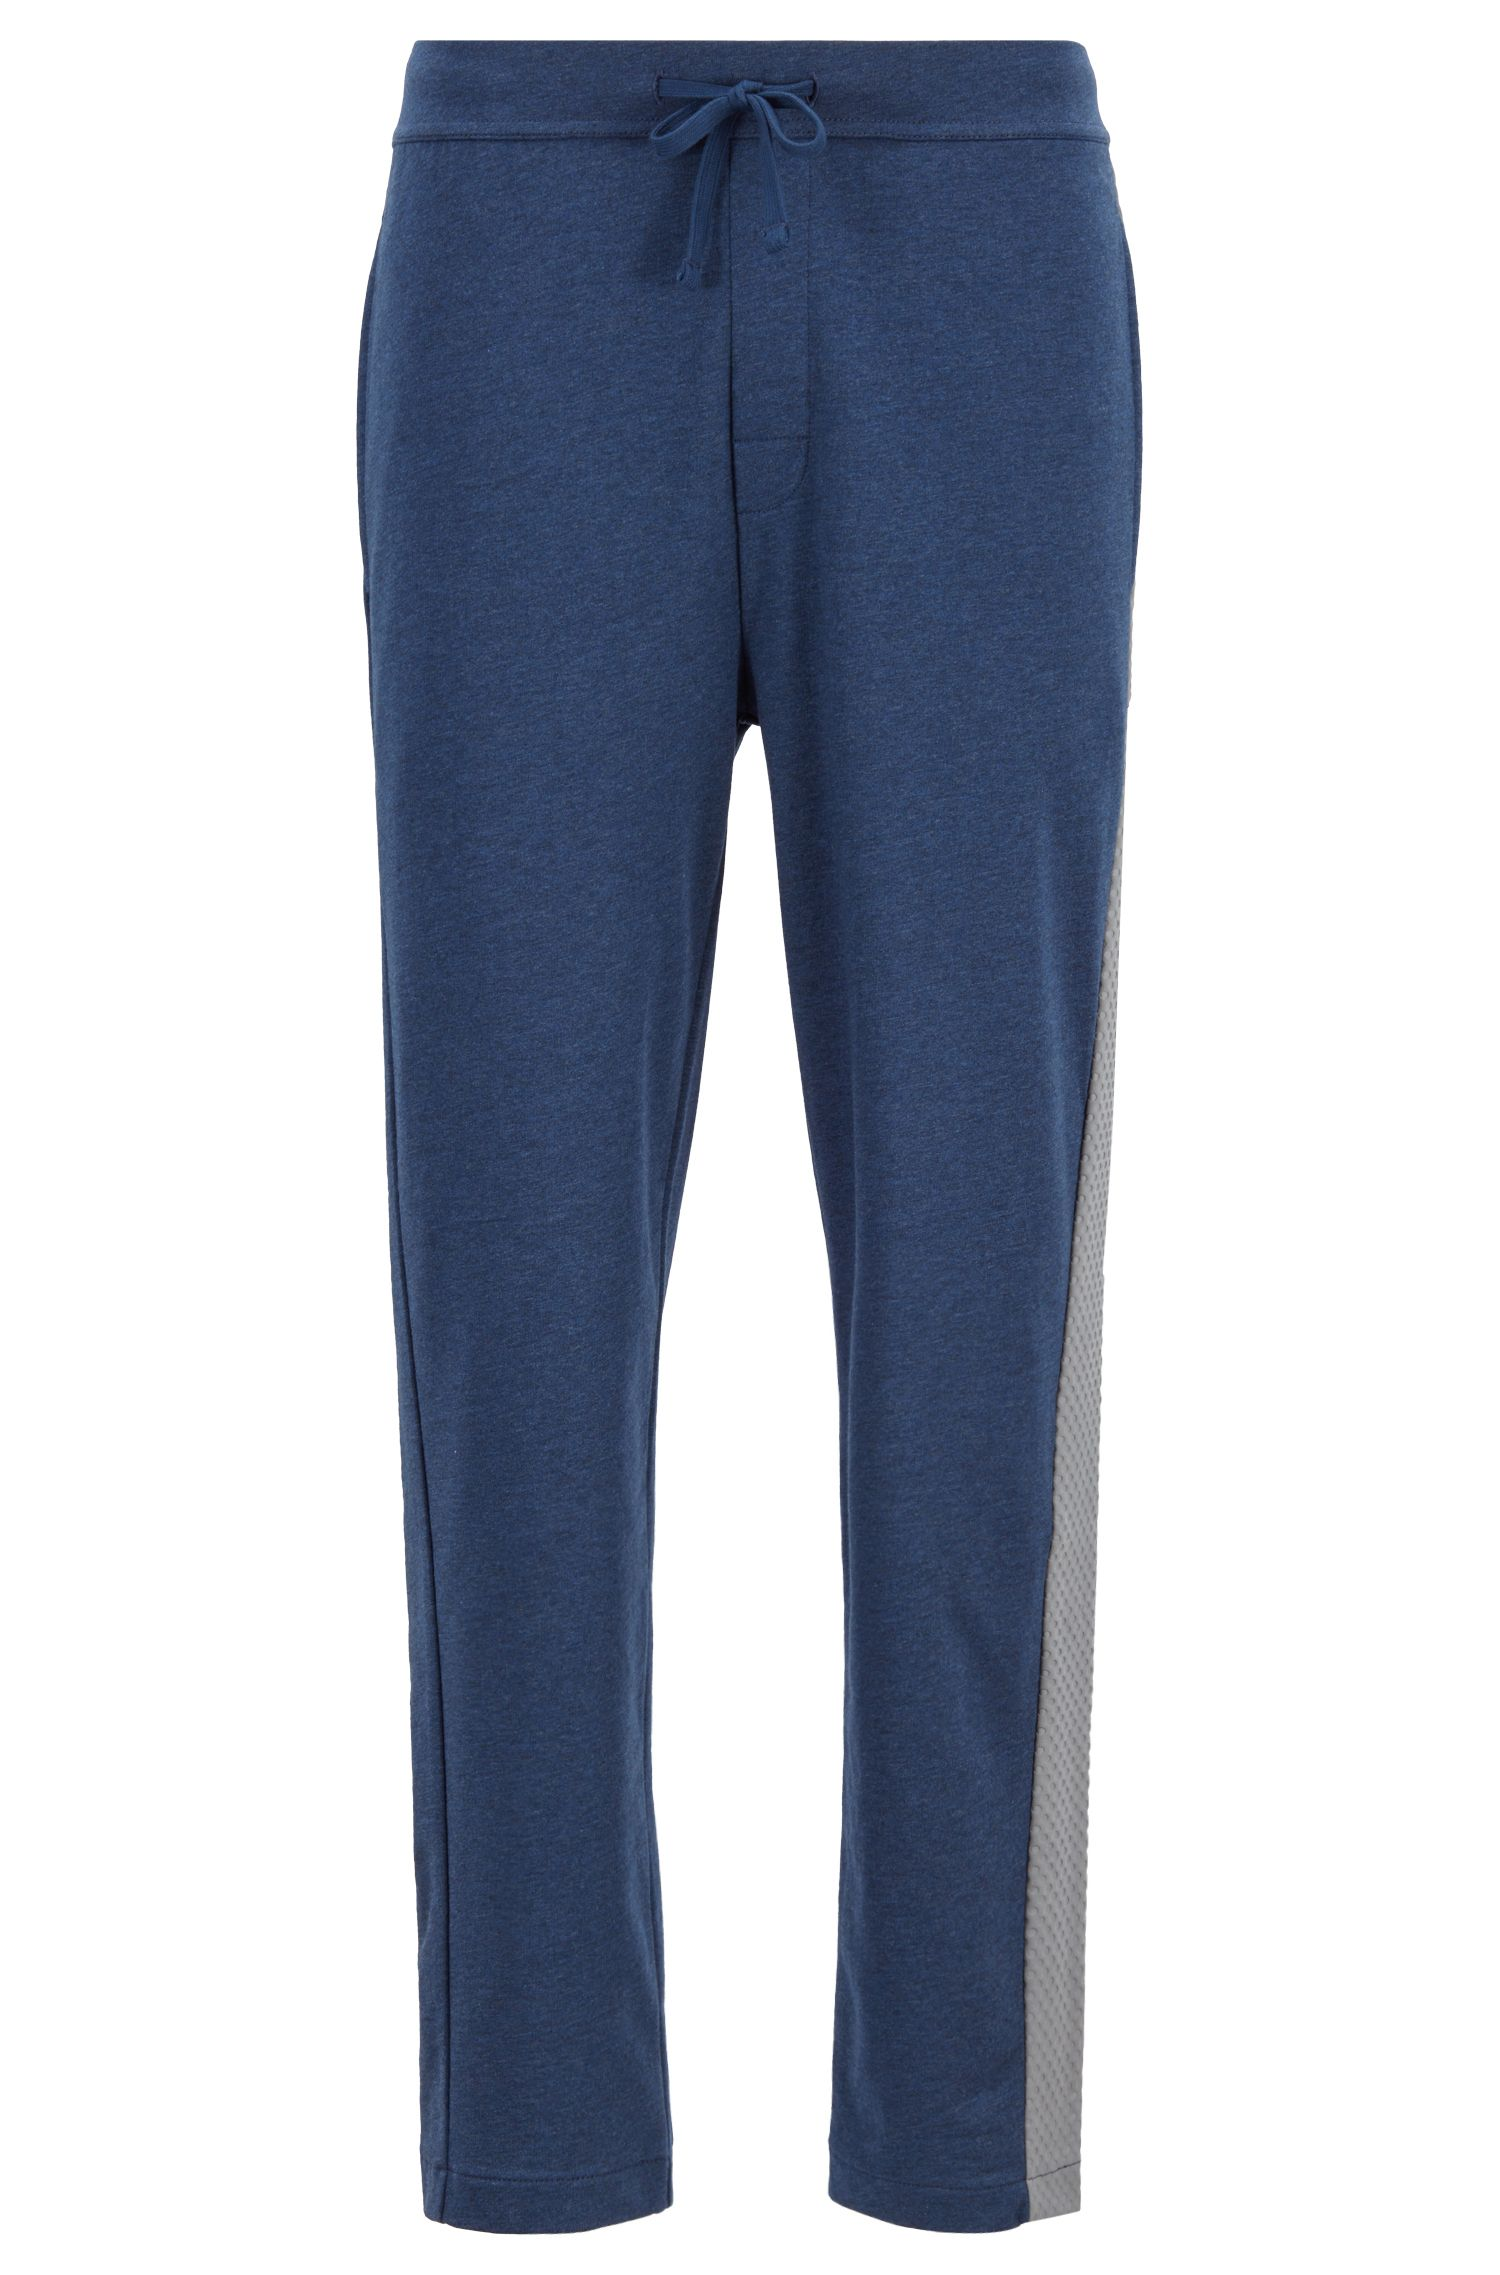 Loungewear-Hose aus French Terry mit Print in Mesh-Optik, Blau